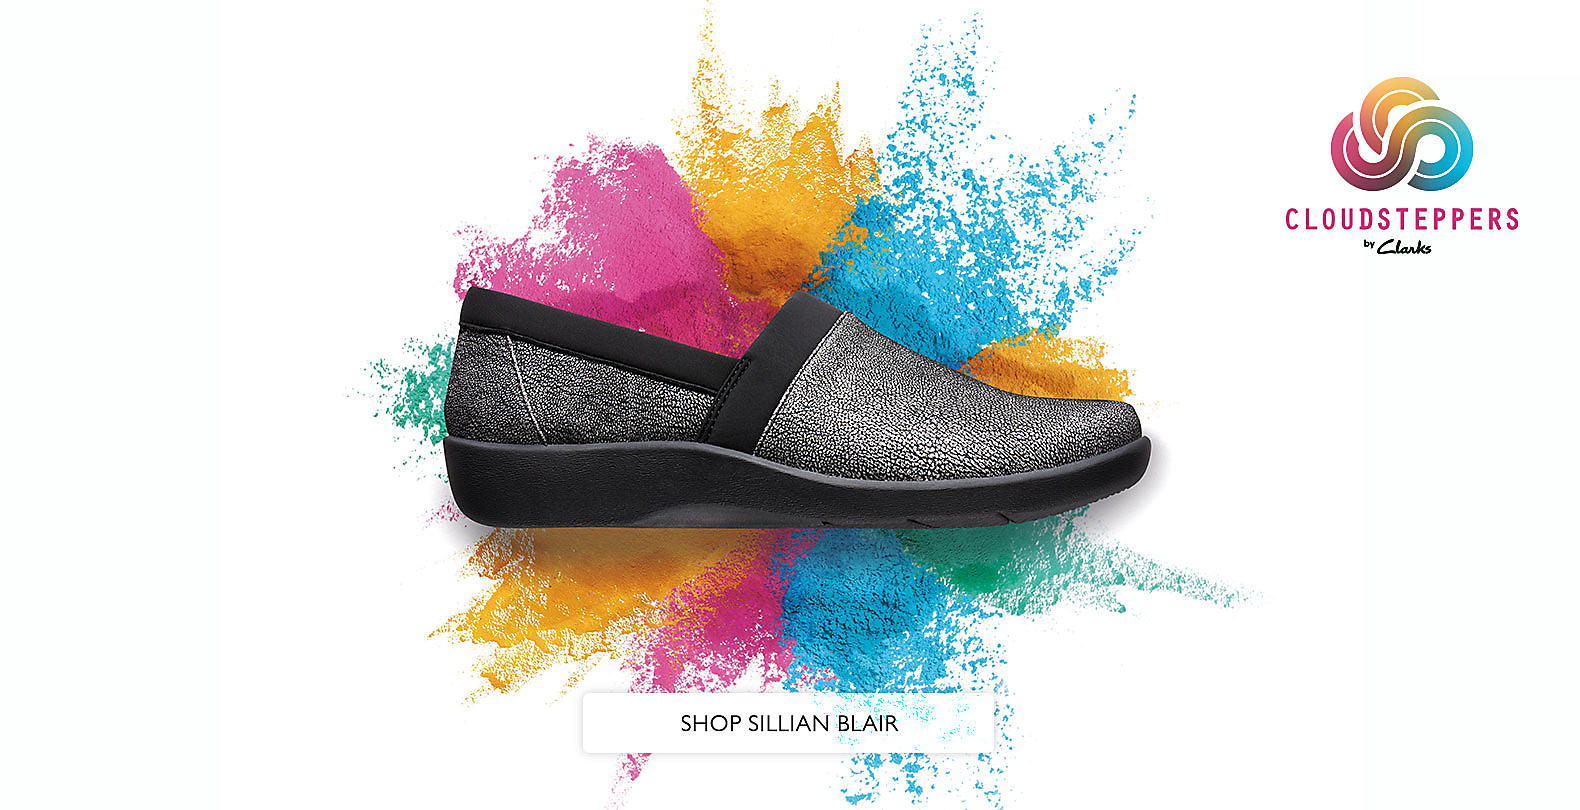 Shop Clarks Womens Cloudsteppers!